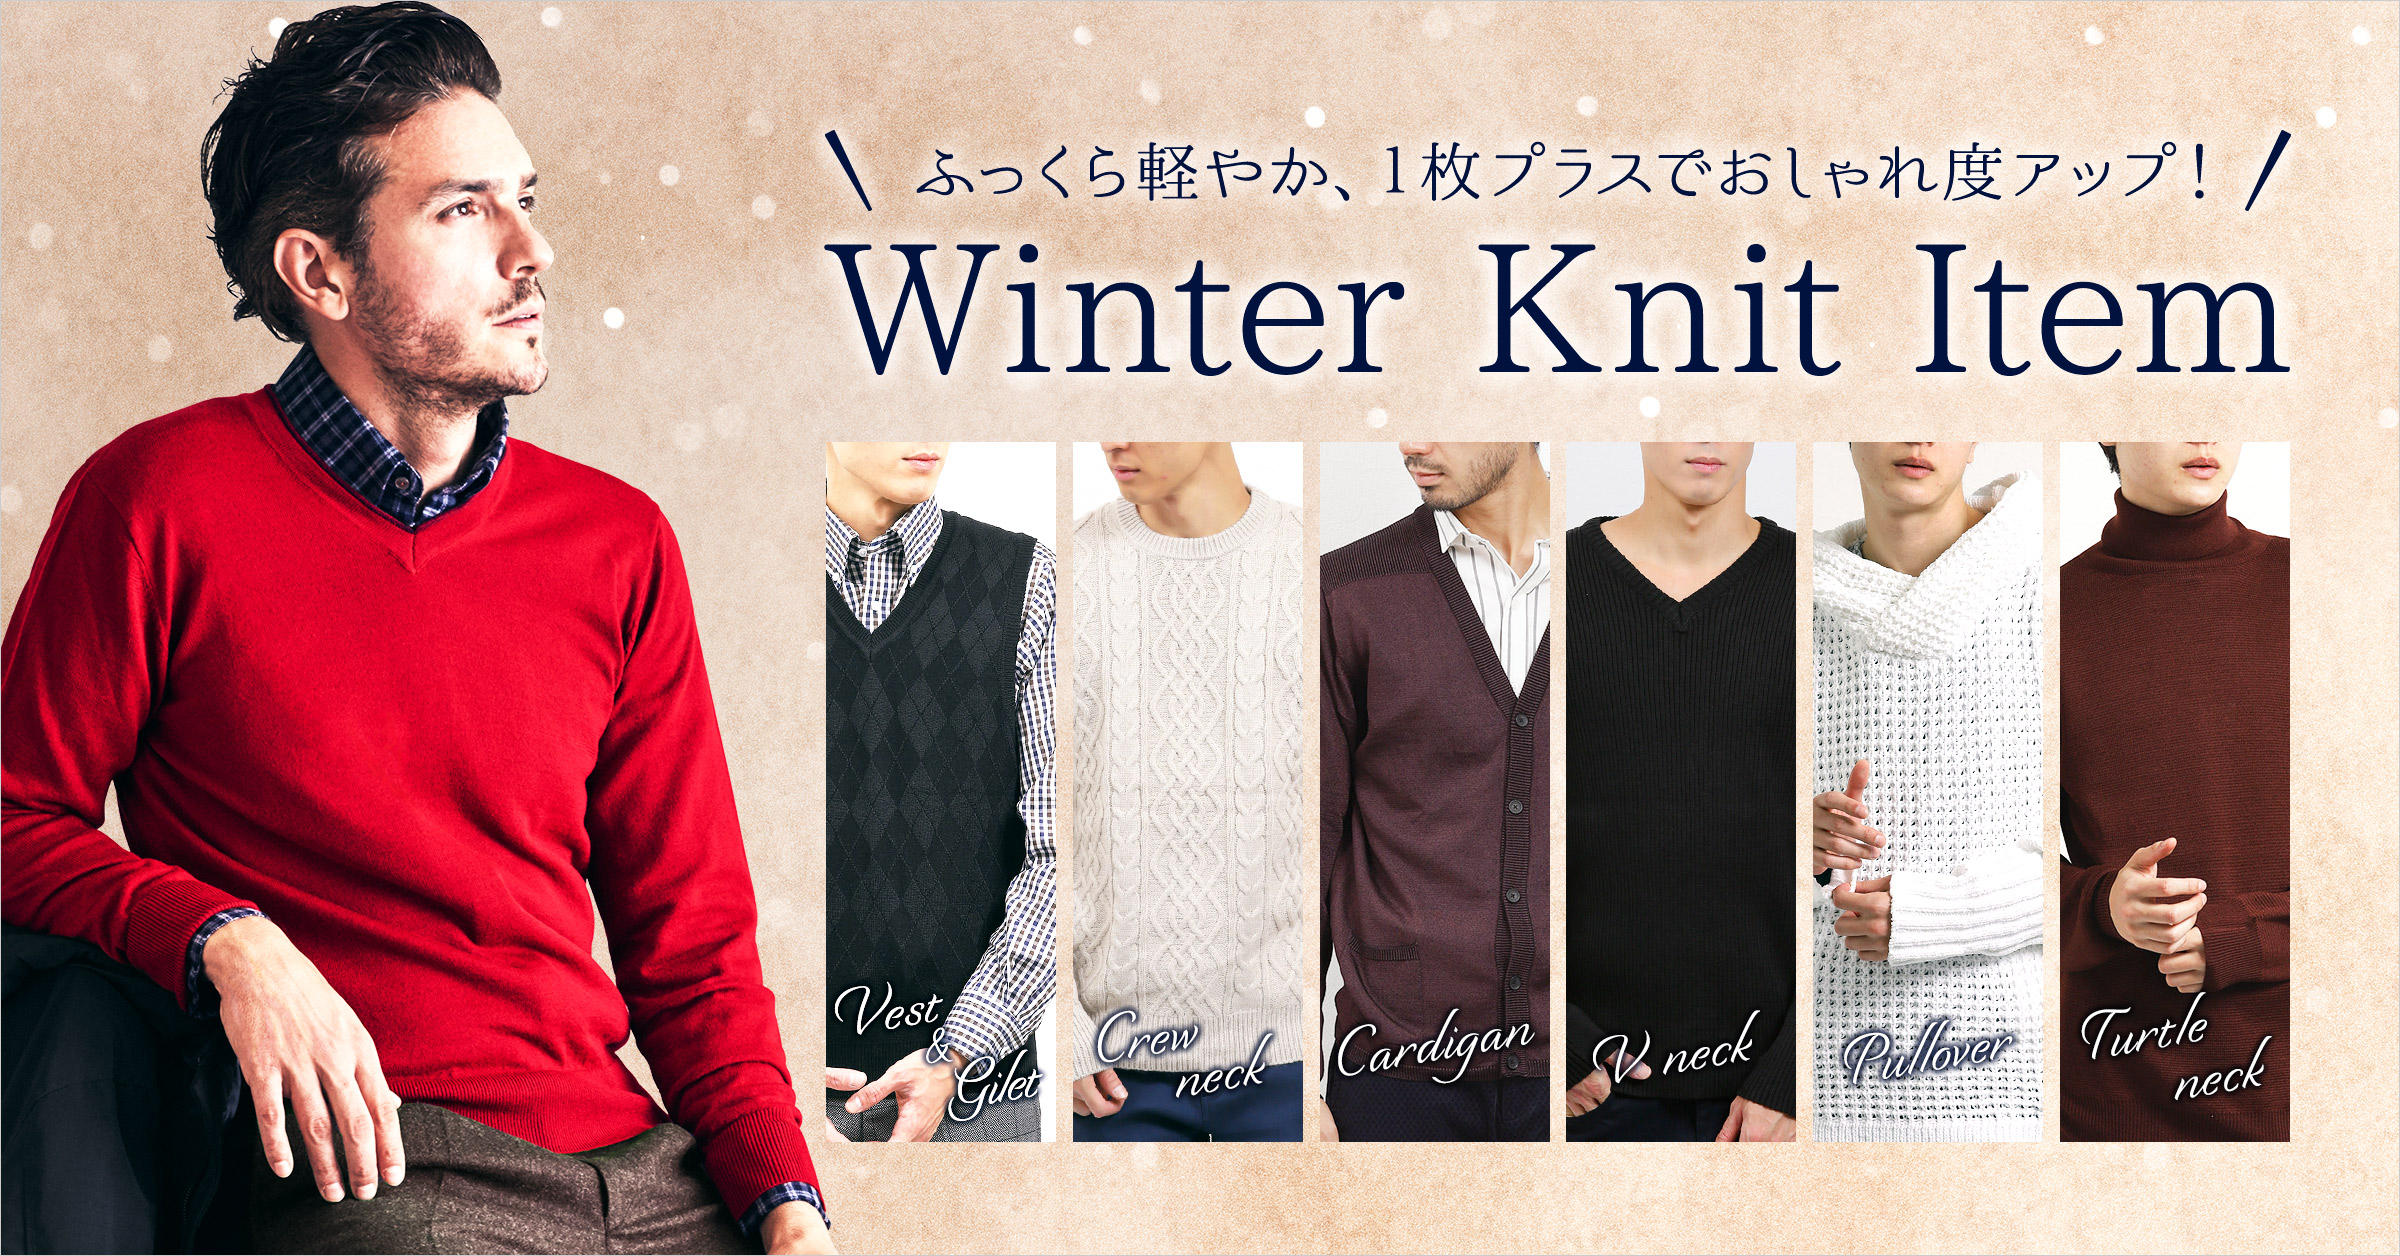 Winter Knit Item